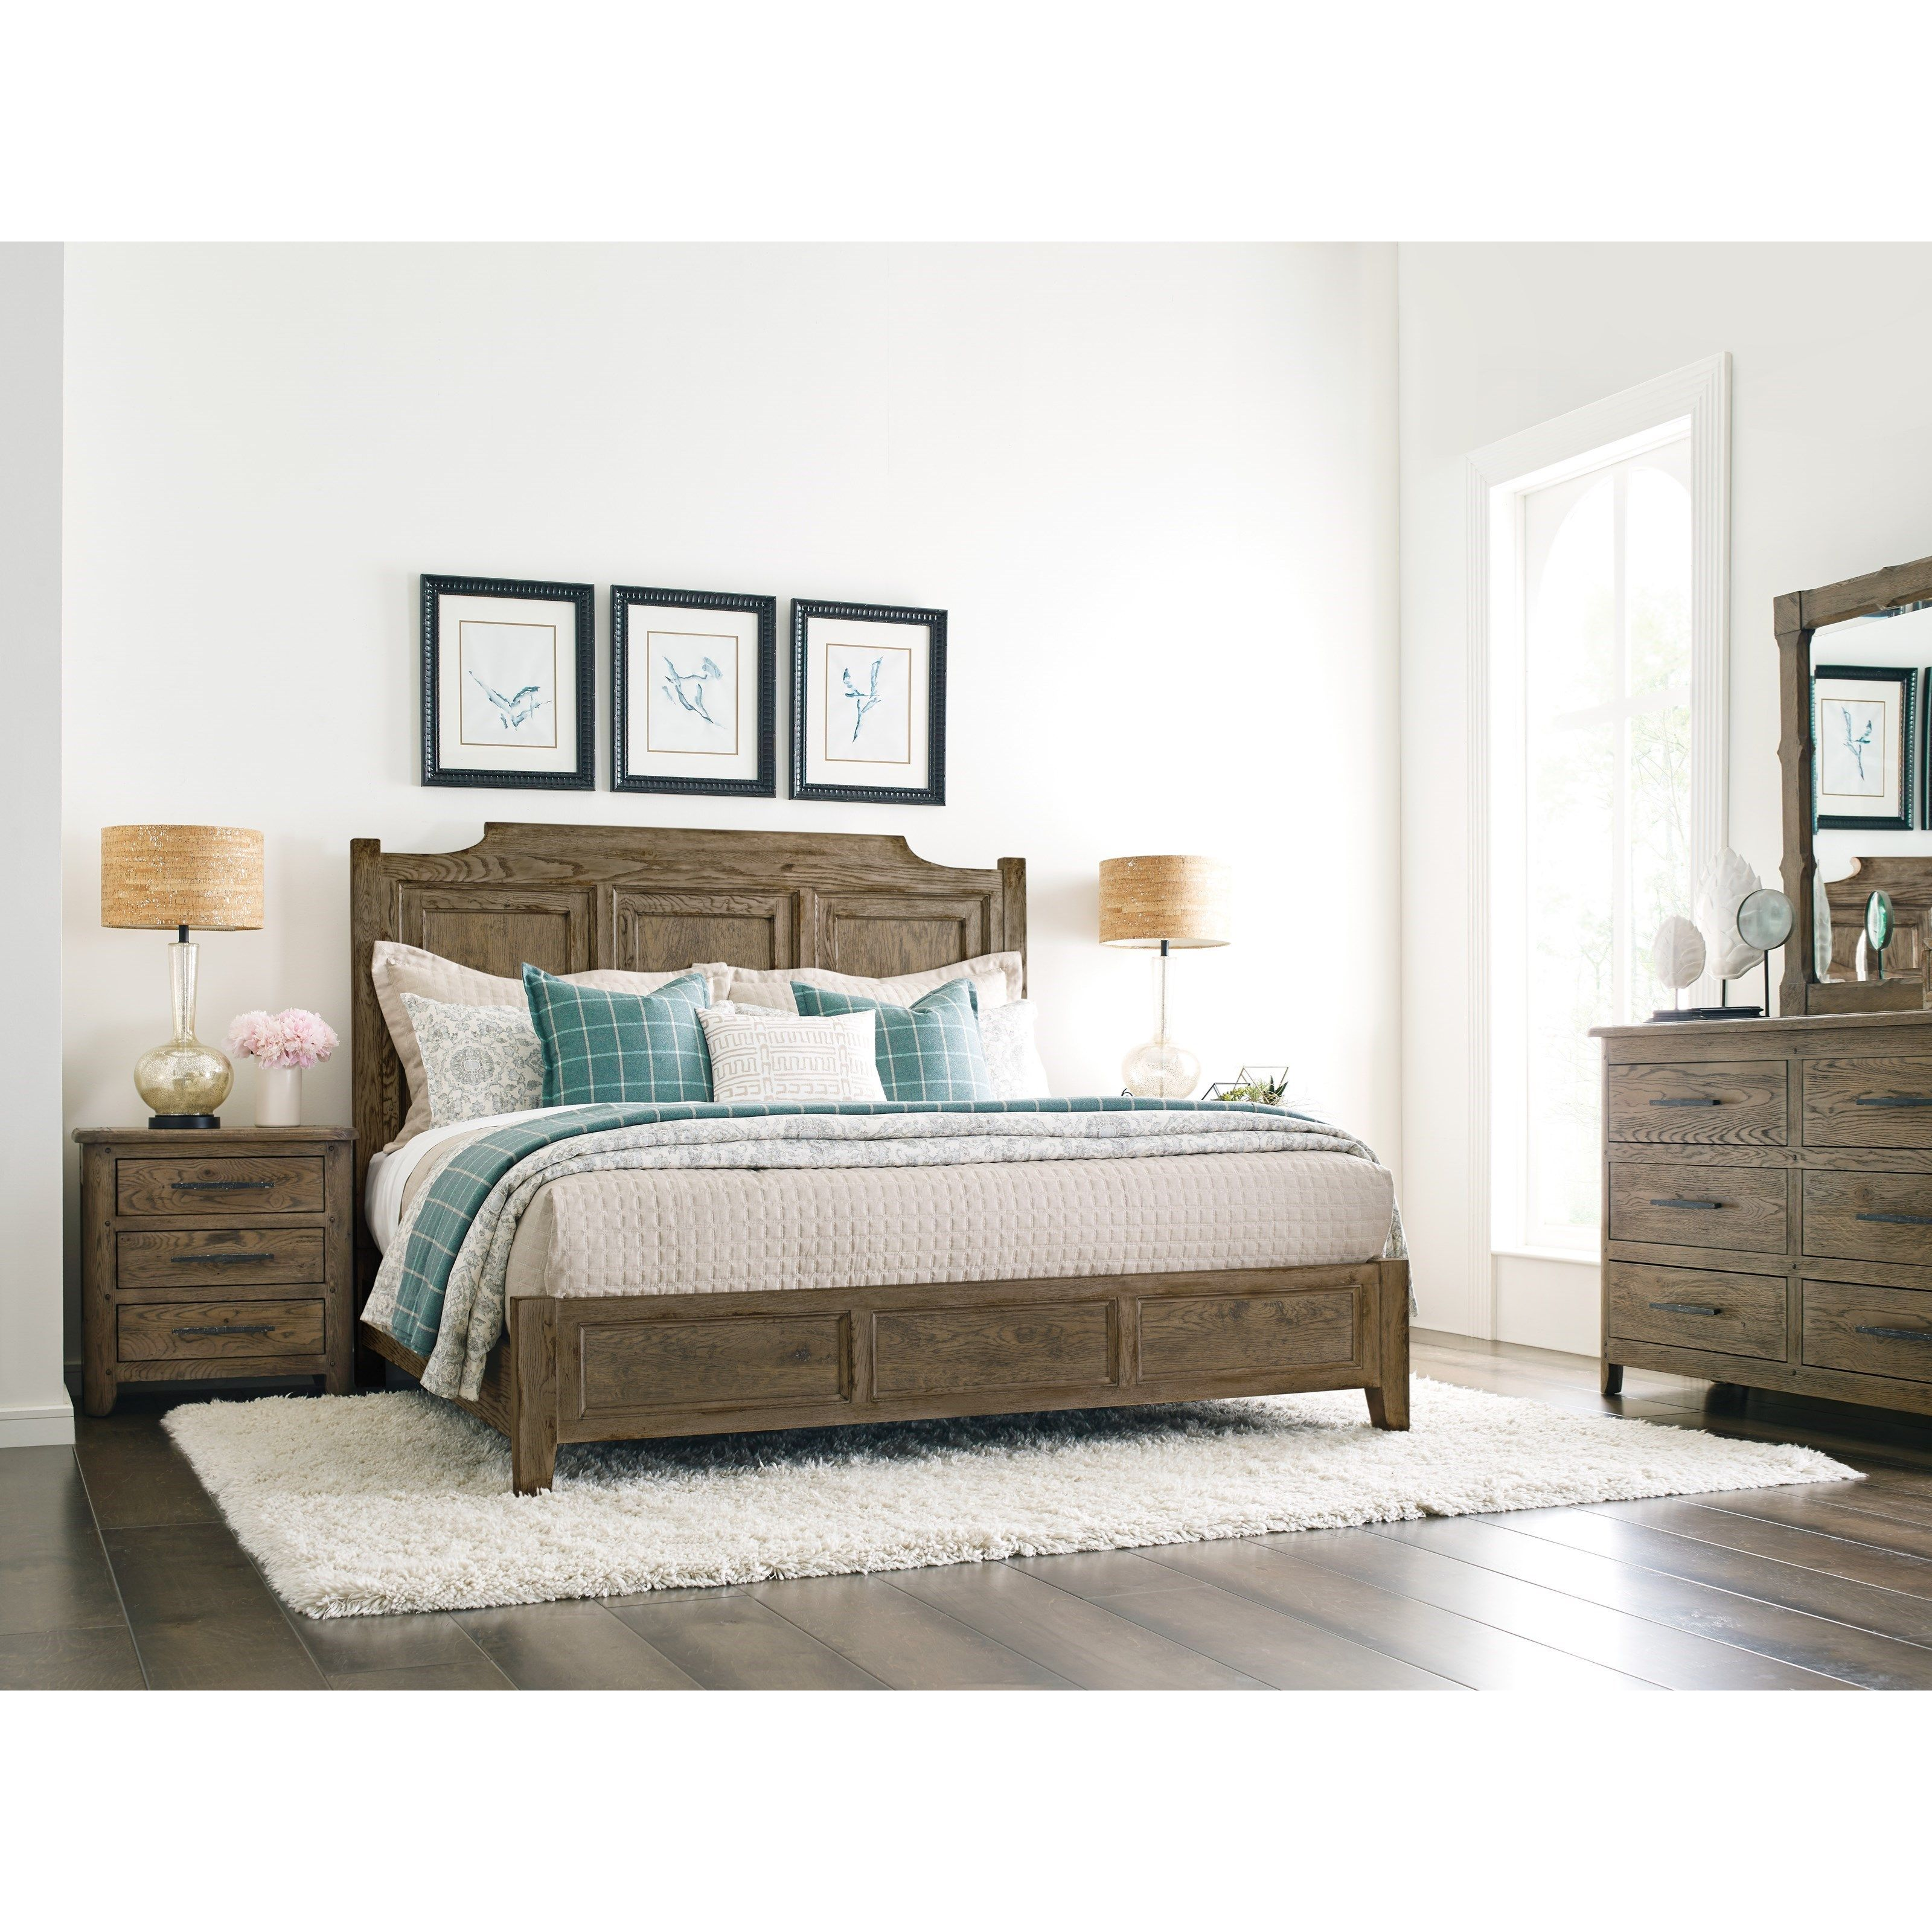 Trails King Bedroom Group By Kincaid Furniture Kincaid Furniture Furniture Bedroom Furniture